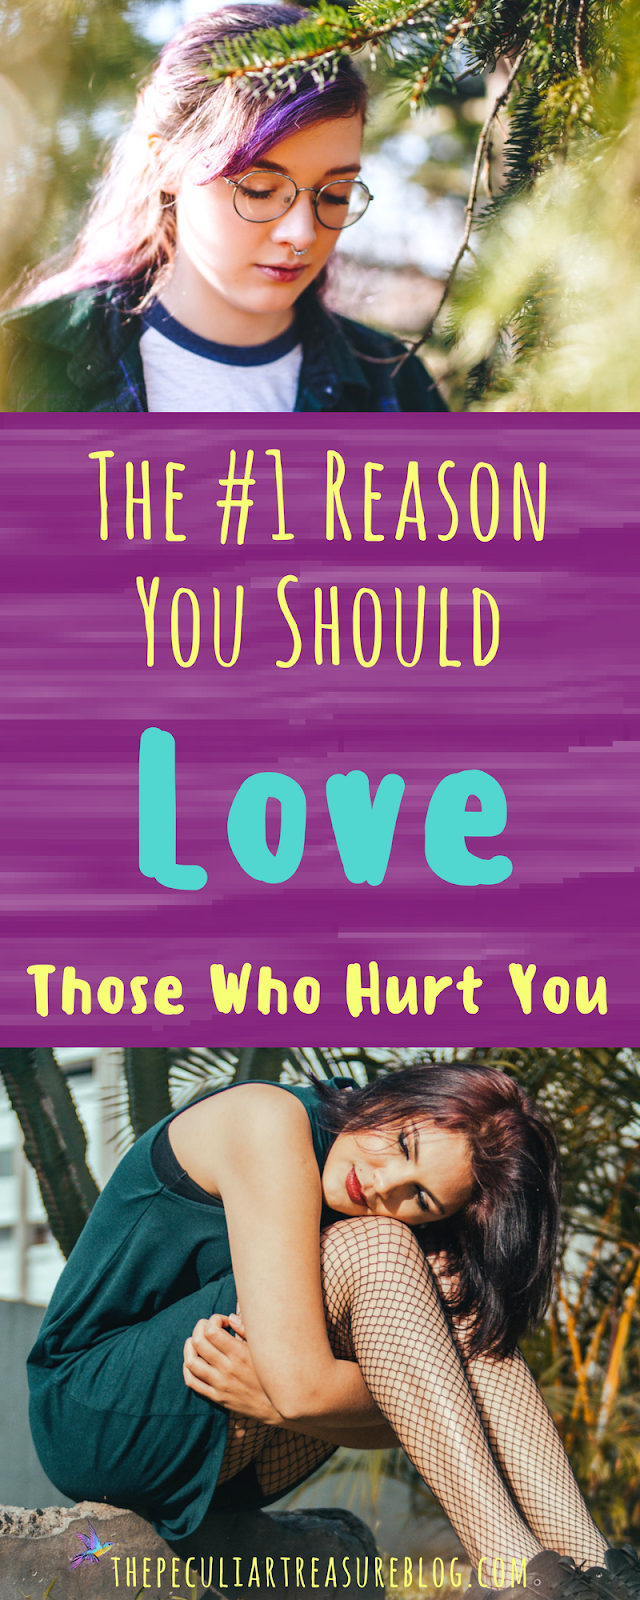 The Peculiar Treasure: The #1 Reason We Should Love Those